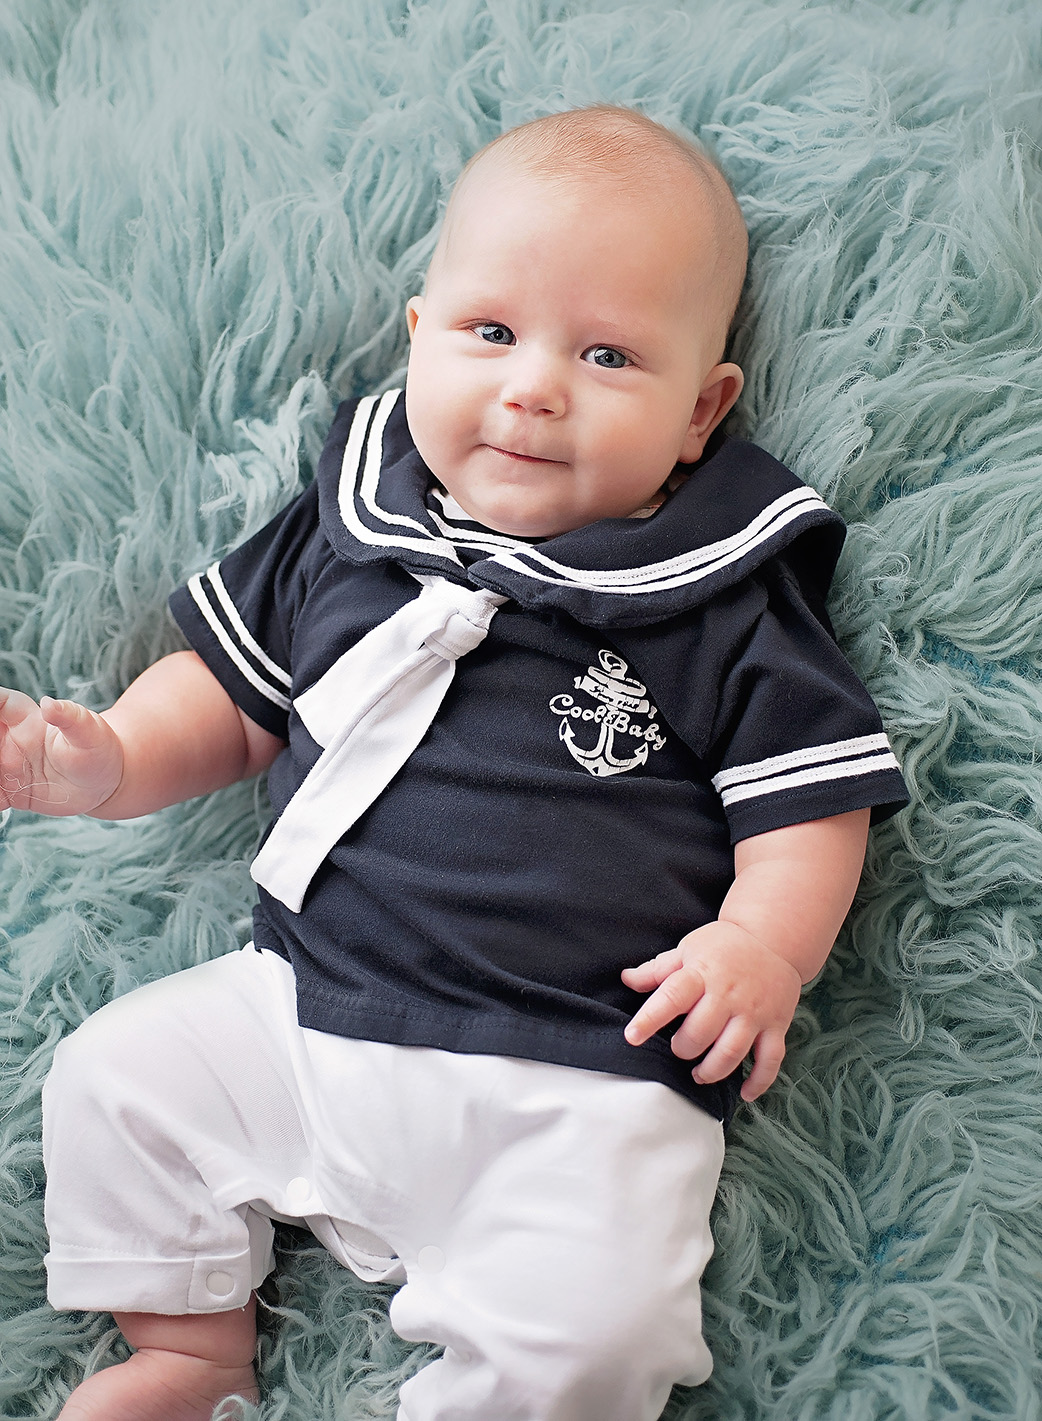 baby boy in sailor outfit on blue fur rug